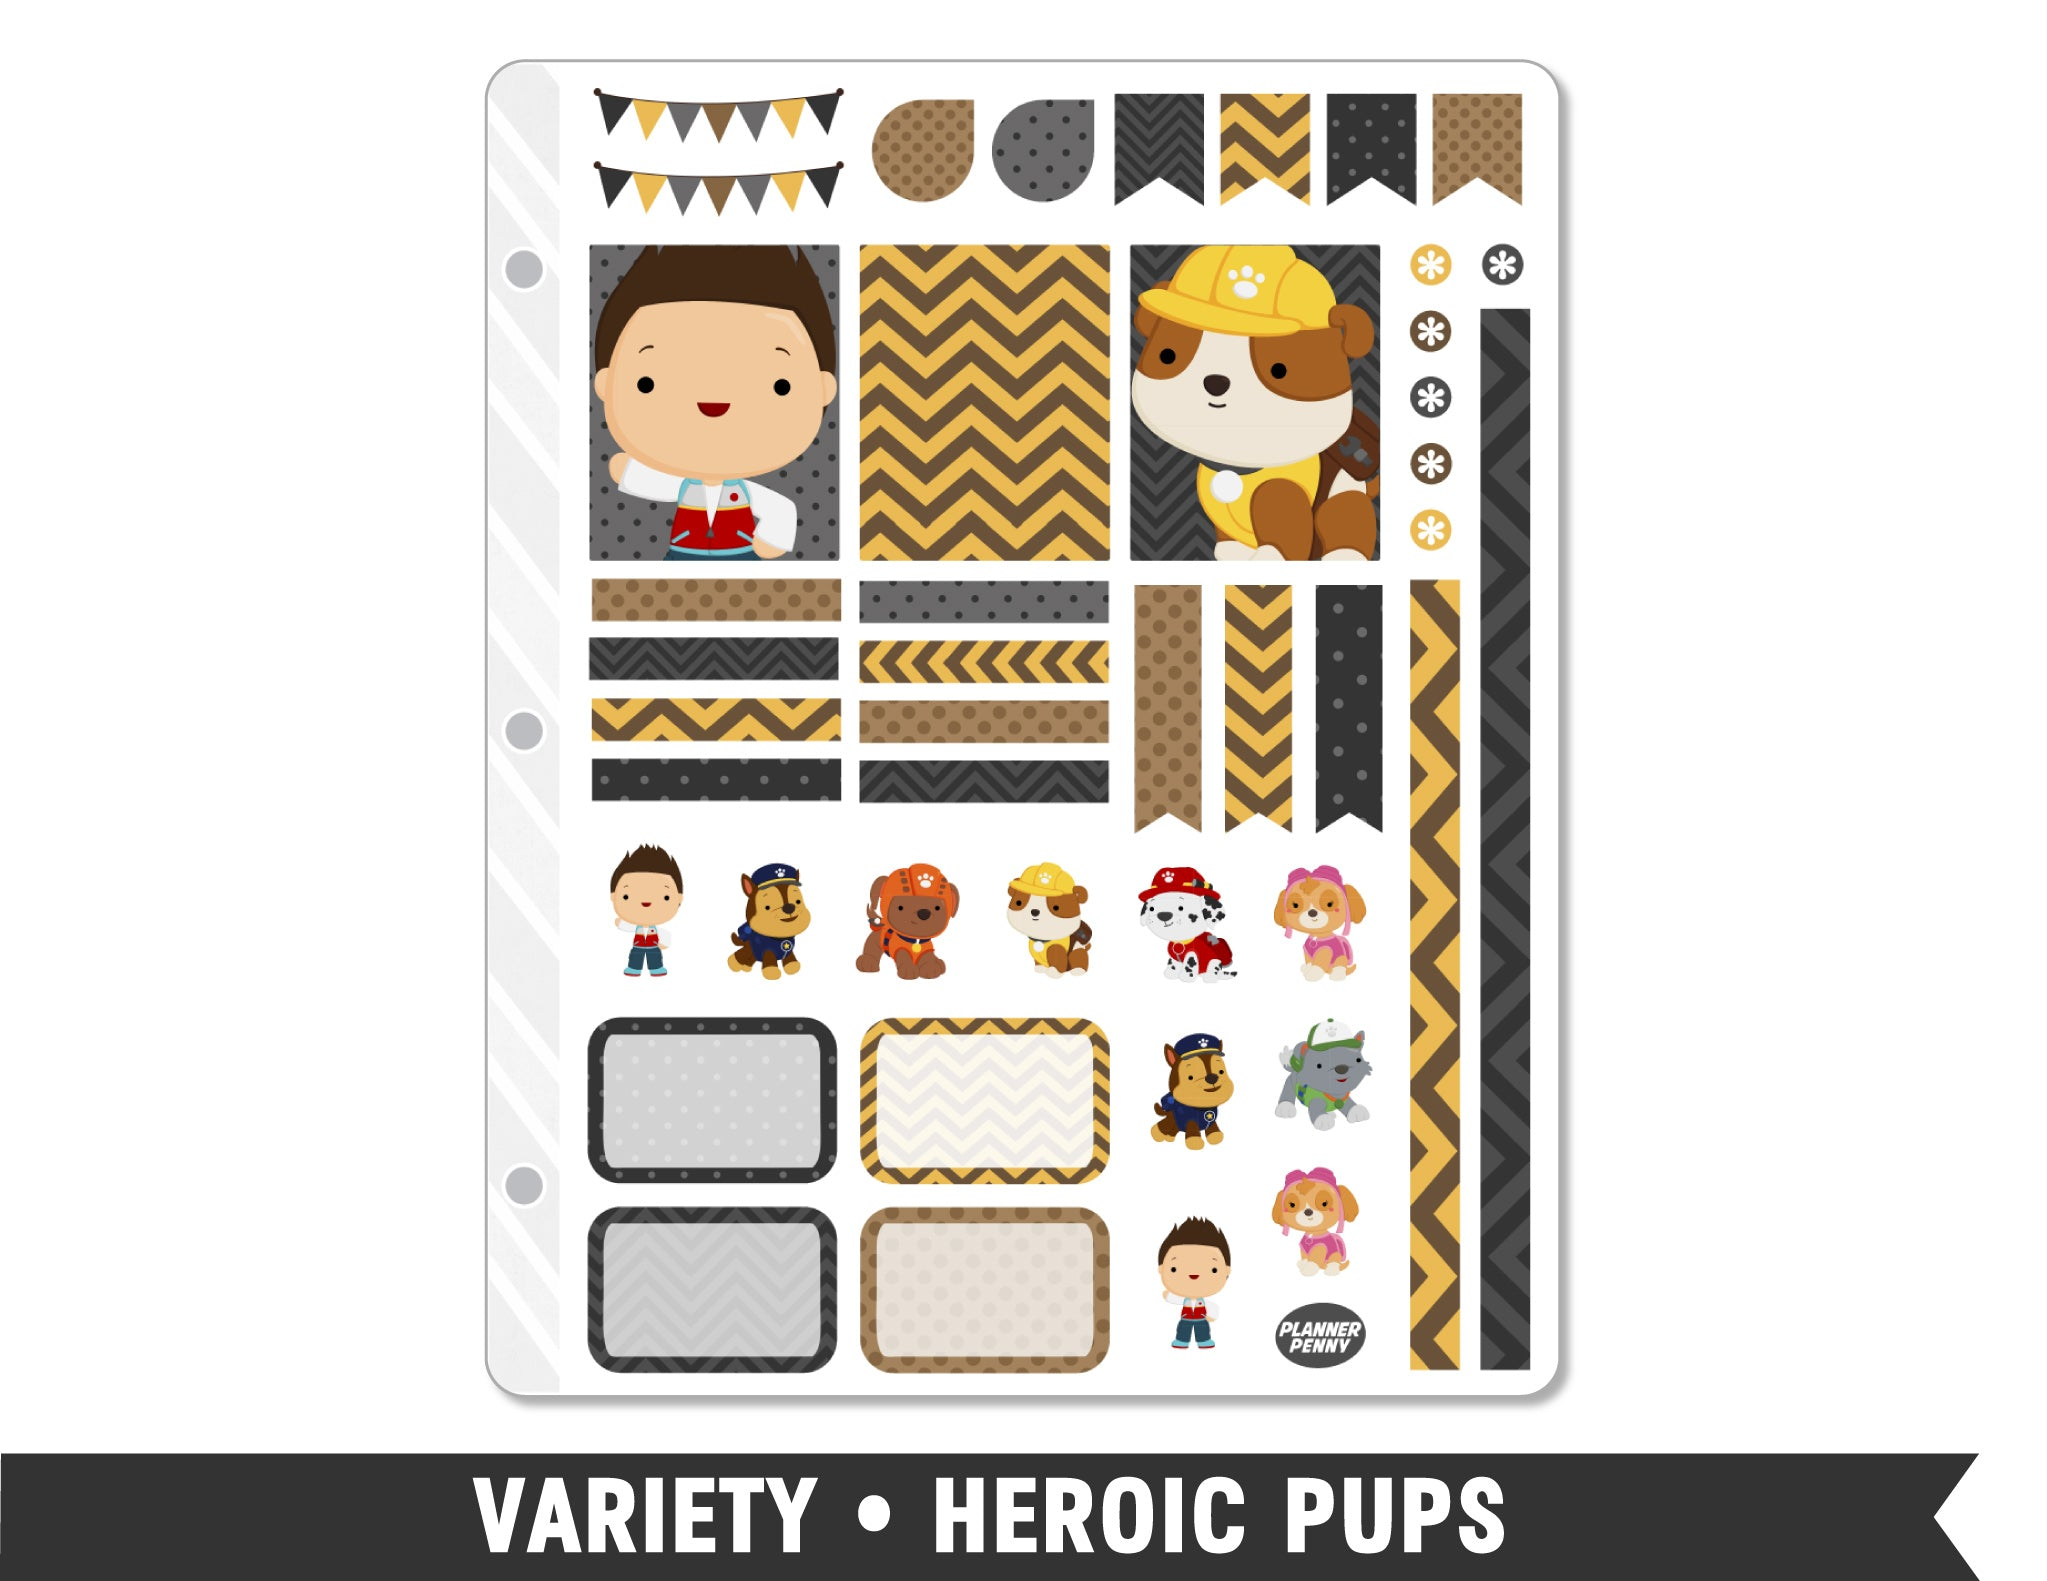 Variety • Heroic Pups Weekly Spread Planner Stickers